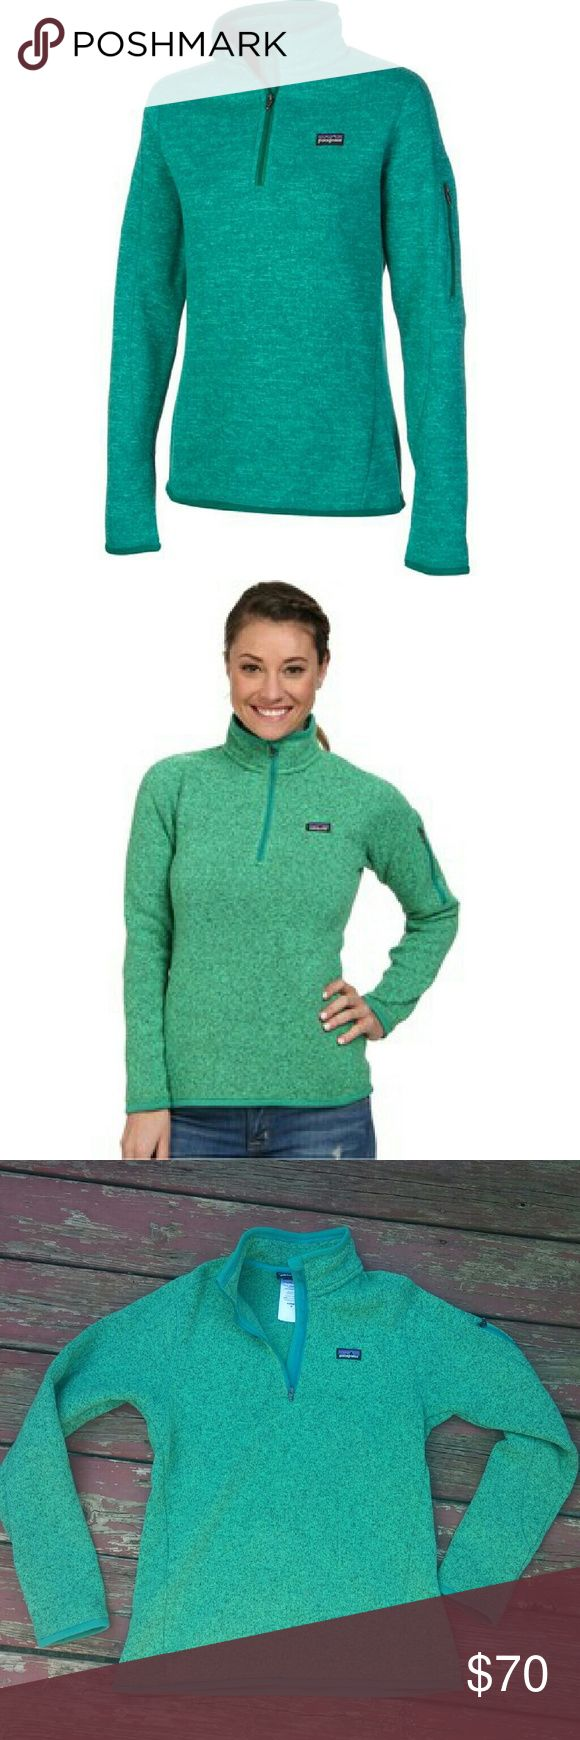 NWOT Patagonia 3/4 Fleece Pullover Fall Esential Alert! Get ready for that crisp fall air with this super cute Patagonia pullover. Super comfy, warm, and cozy! No condition! Breathtaking green color with arm pocket and front pockets! Patagonia Tops Sweatshirts & Hoodies